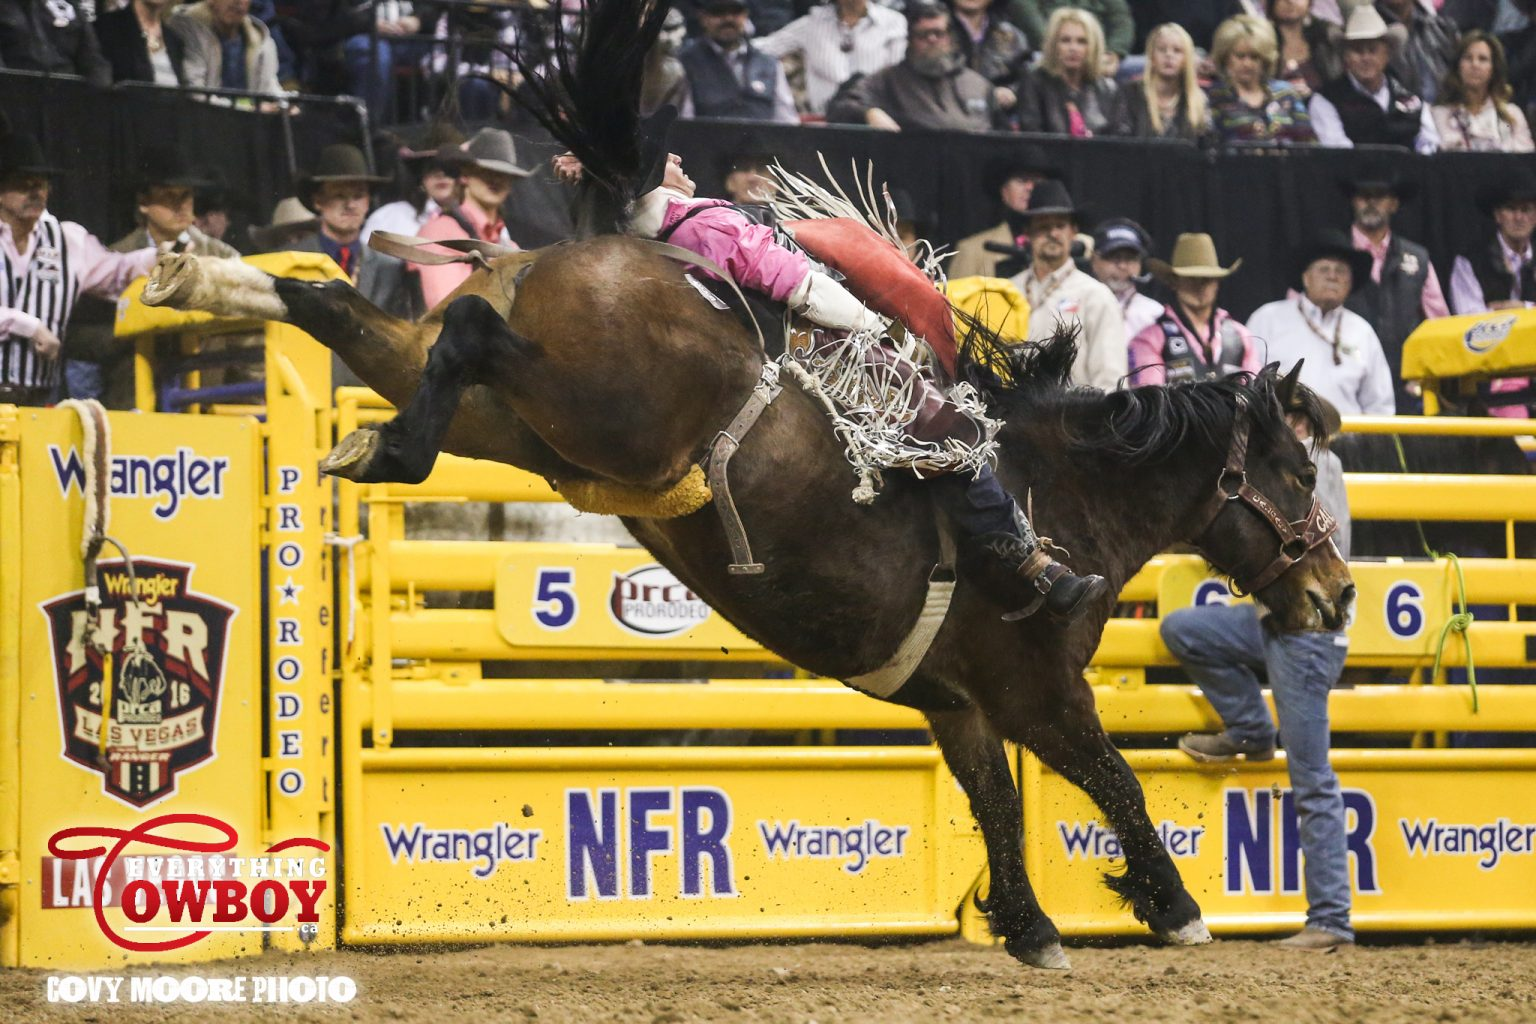 Calgary's Reckless Margie showed Jessy Davis some of the horsepower coming out of Canada in 2016 during the fifth round of competition at the Wrangler National Finals Rodeo.